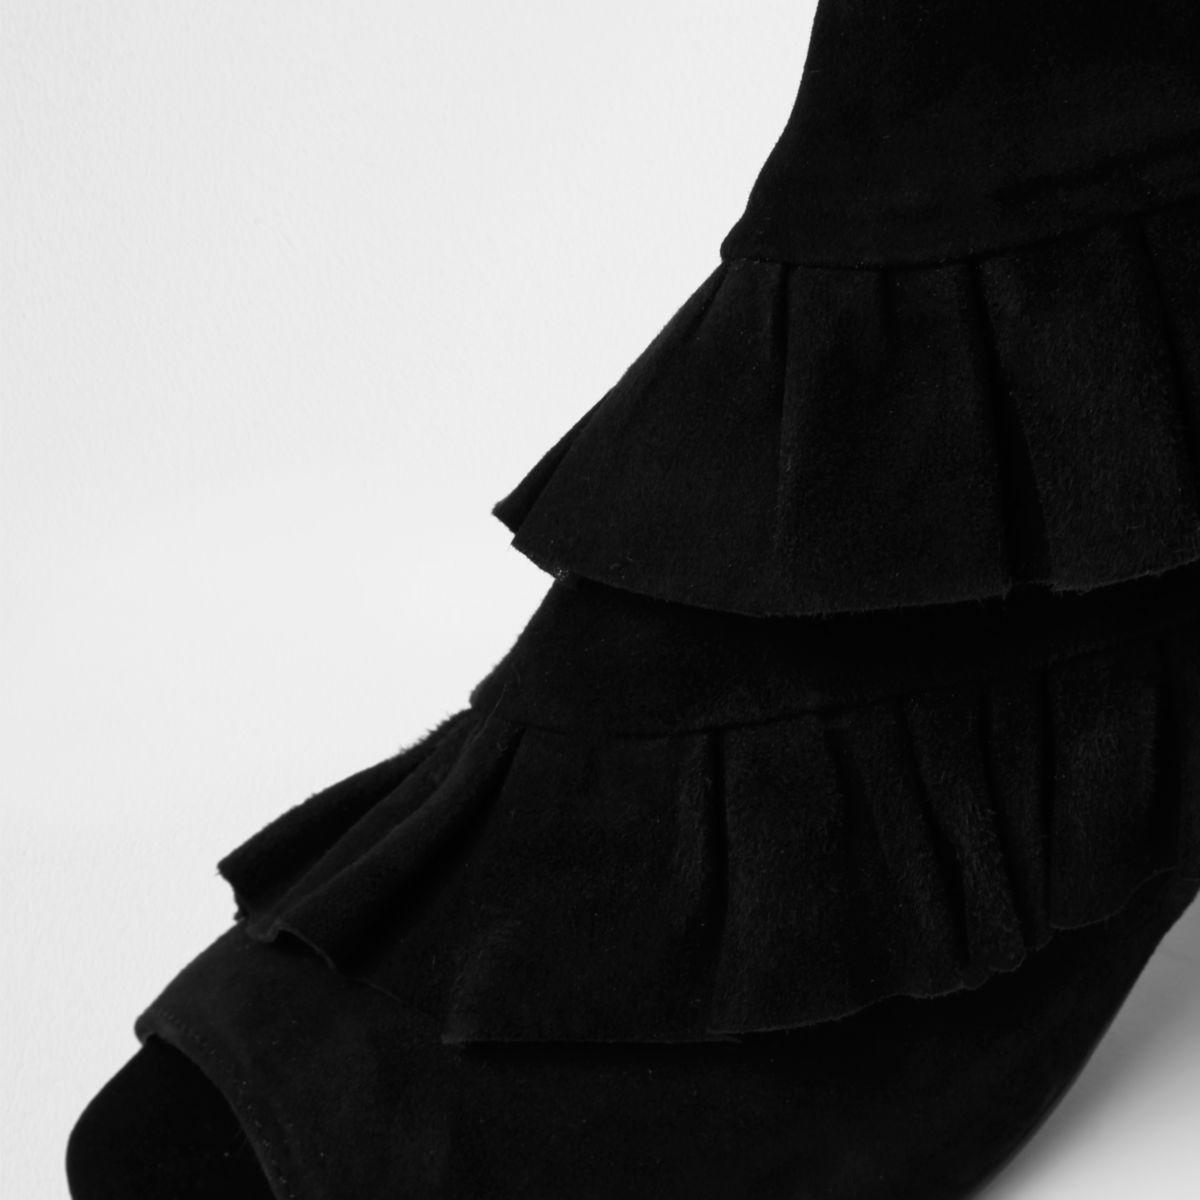 b1eb2fb5a508 Lyst - River island Black Suede Frill Peep Toe Ankle Boot in Black